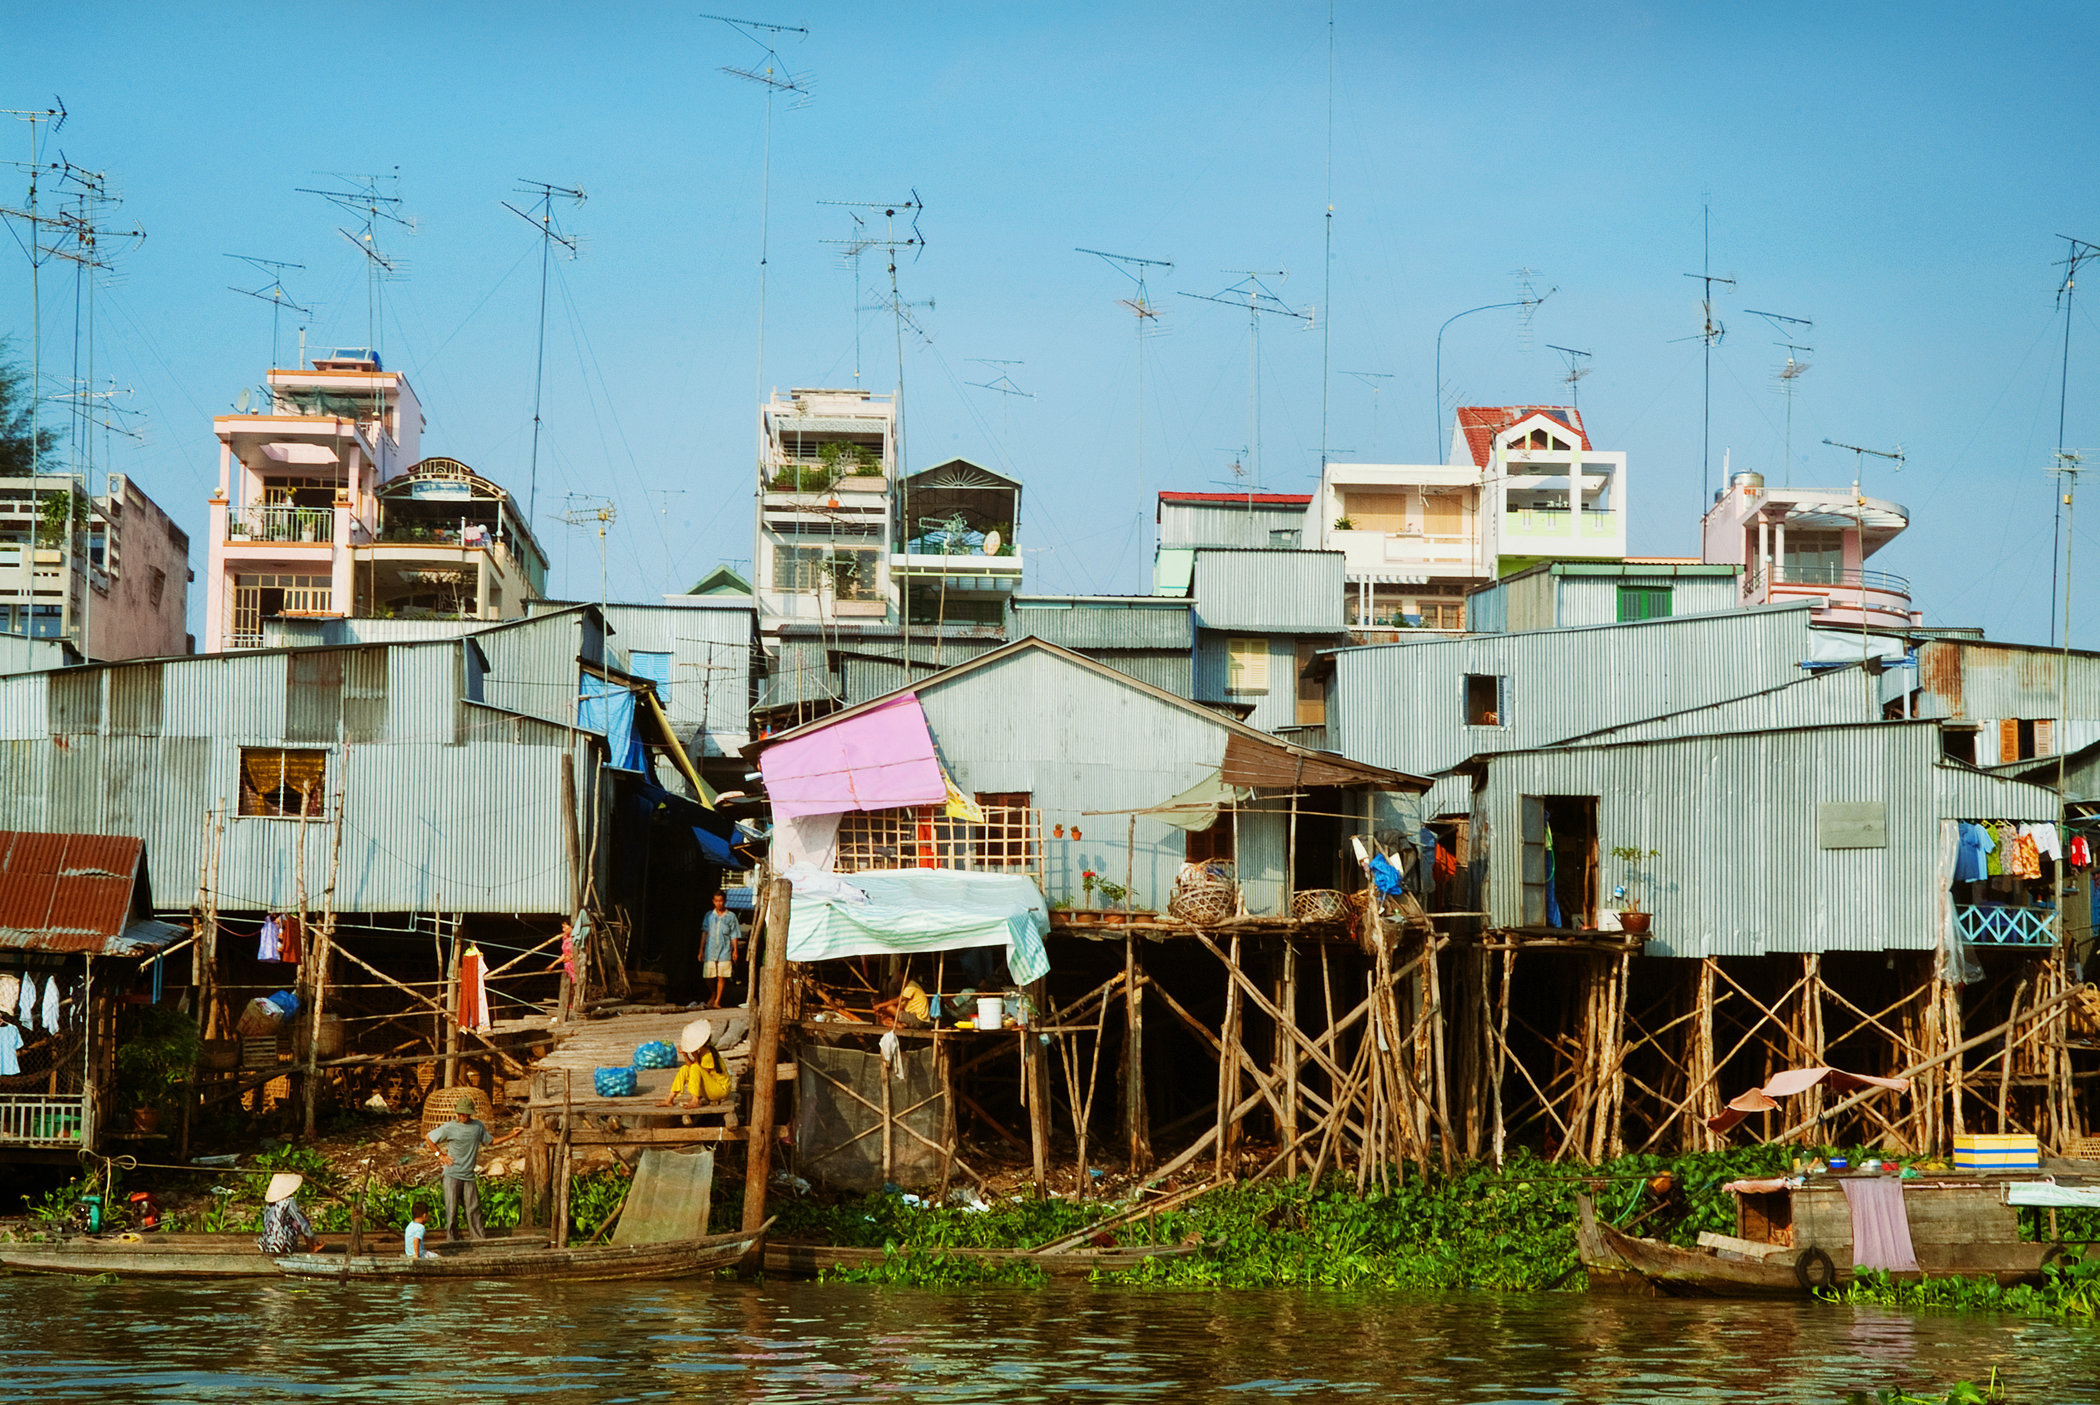 Stilt Houses on the Mekong